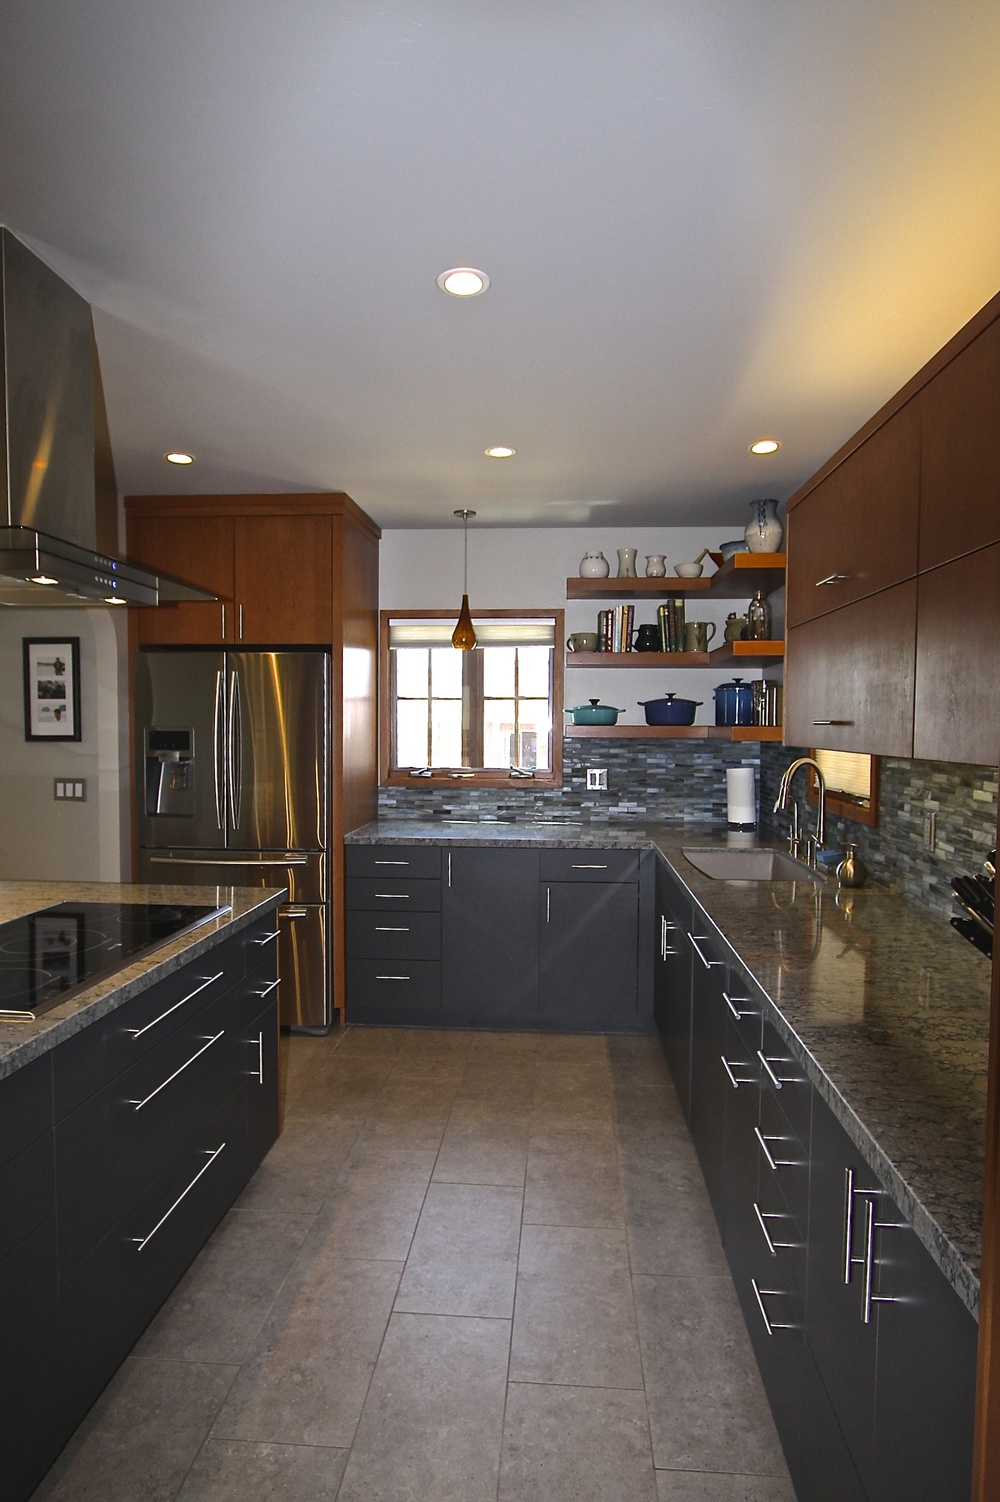 After: A really well designed space. The custom cabinets by Creative Woodworks included most of the bells and whistles the owners were hoping for.